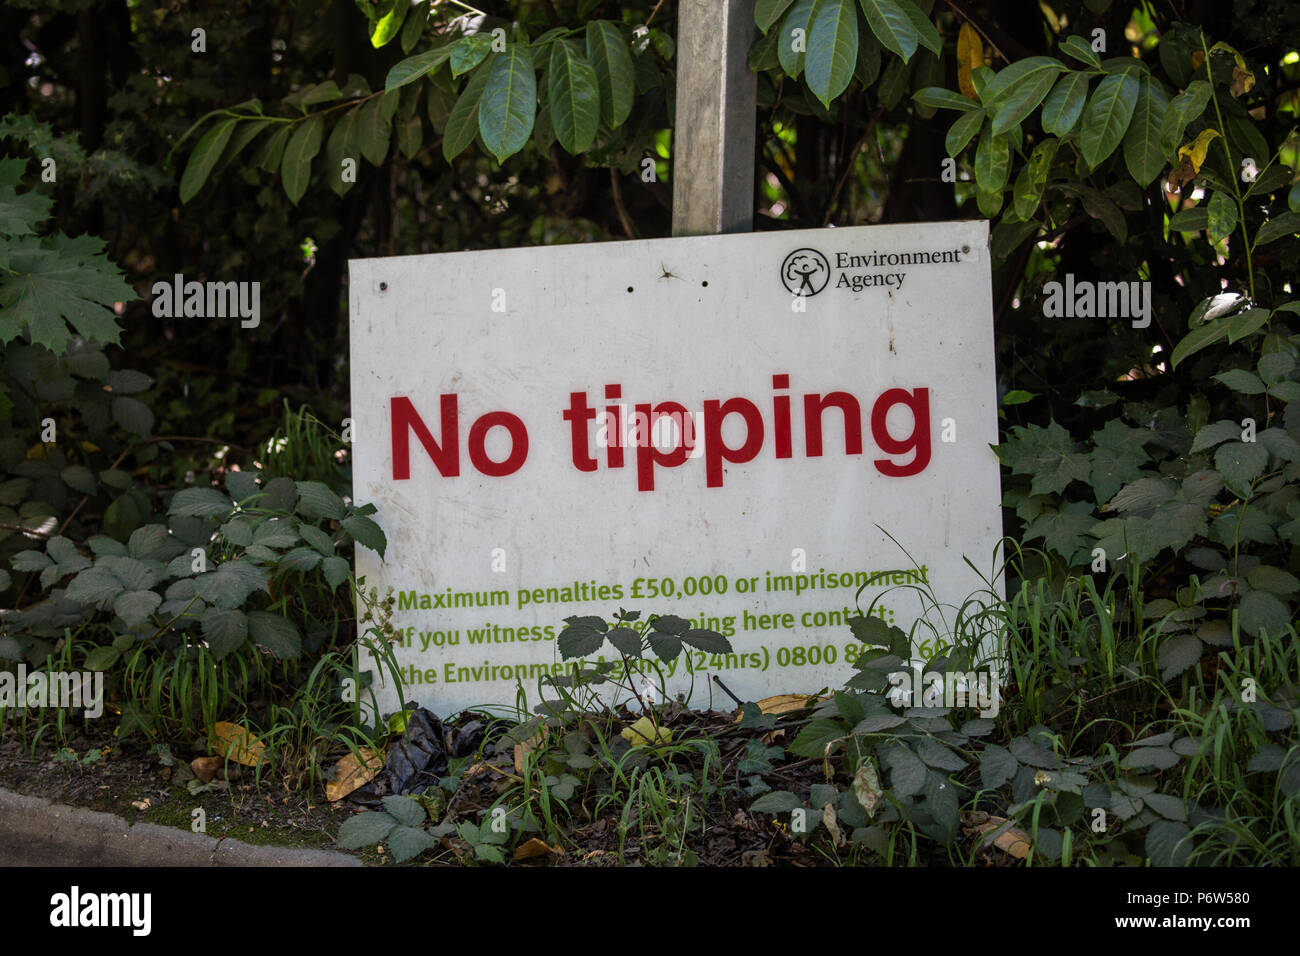 Englefield Green, UK. 2nd July, 2018. An Environment Agency sign warning against the fly-tipping, or the illegal dumping of waste. - Stock Image